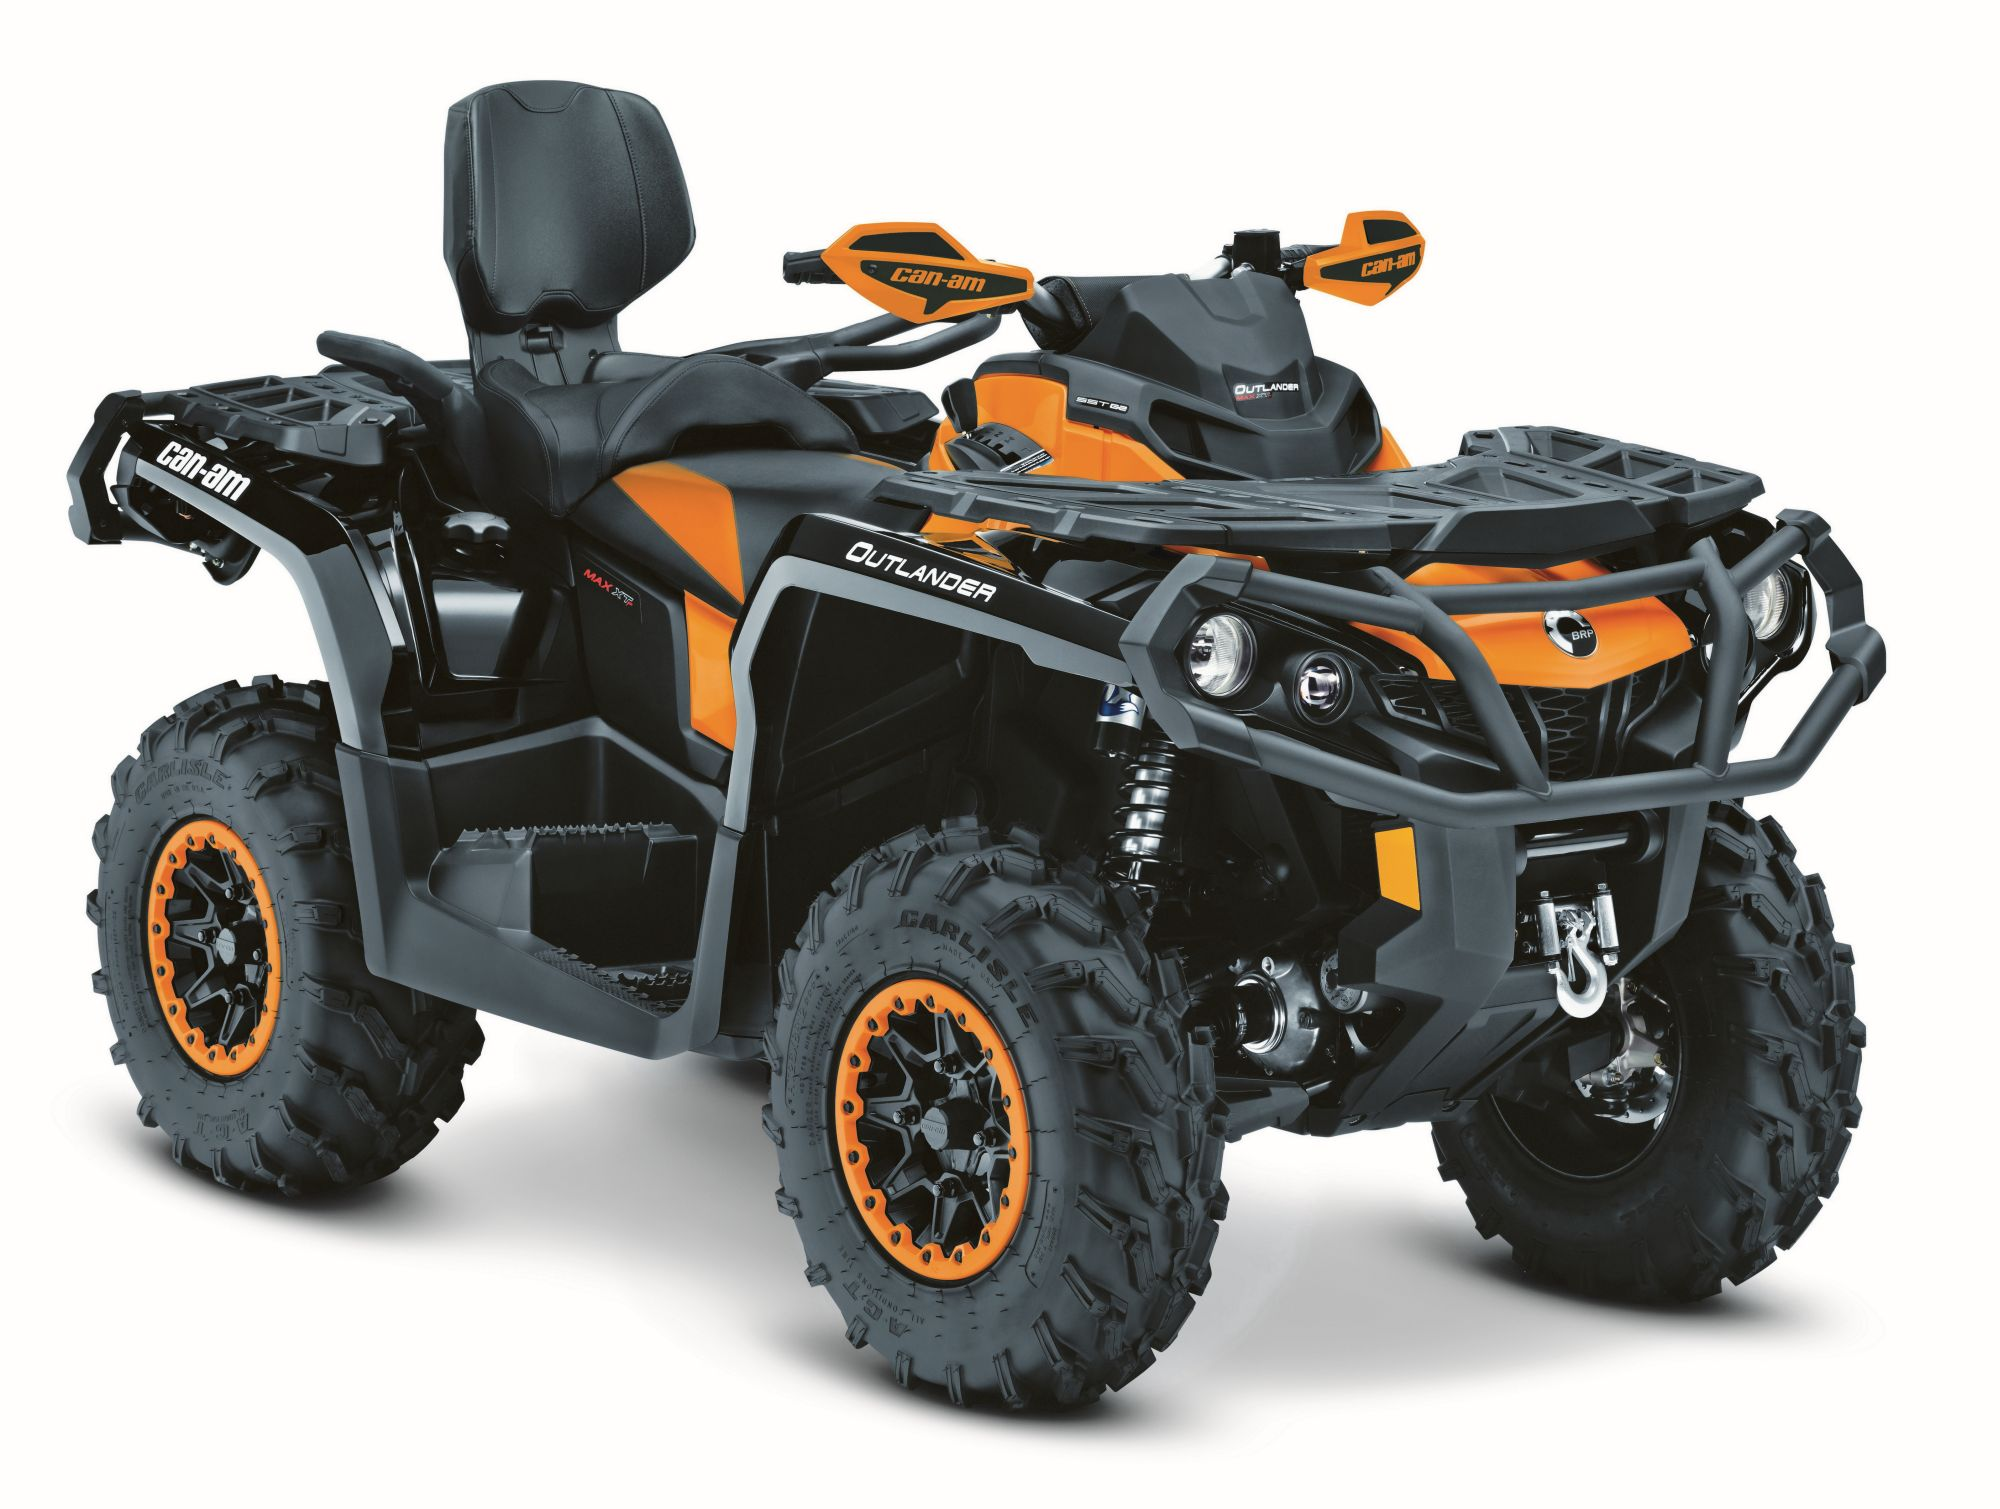 motorrad occasion can am outlander 1000 max xt p kaufen. Black Bedroom Furniture Sets. Home Design Ideas